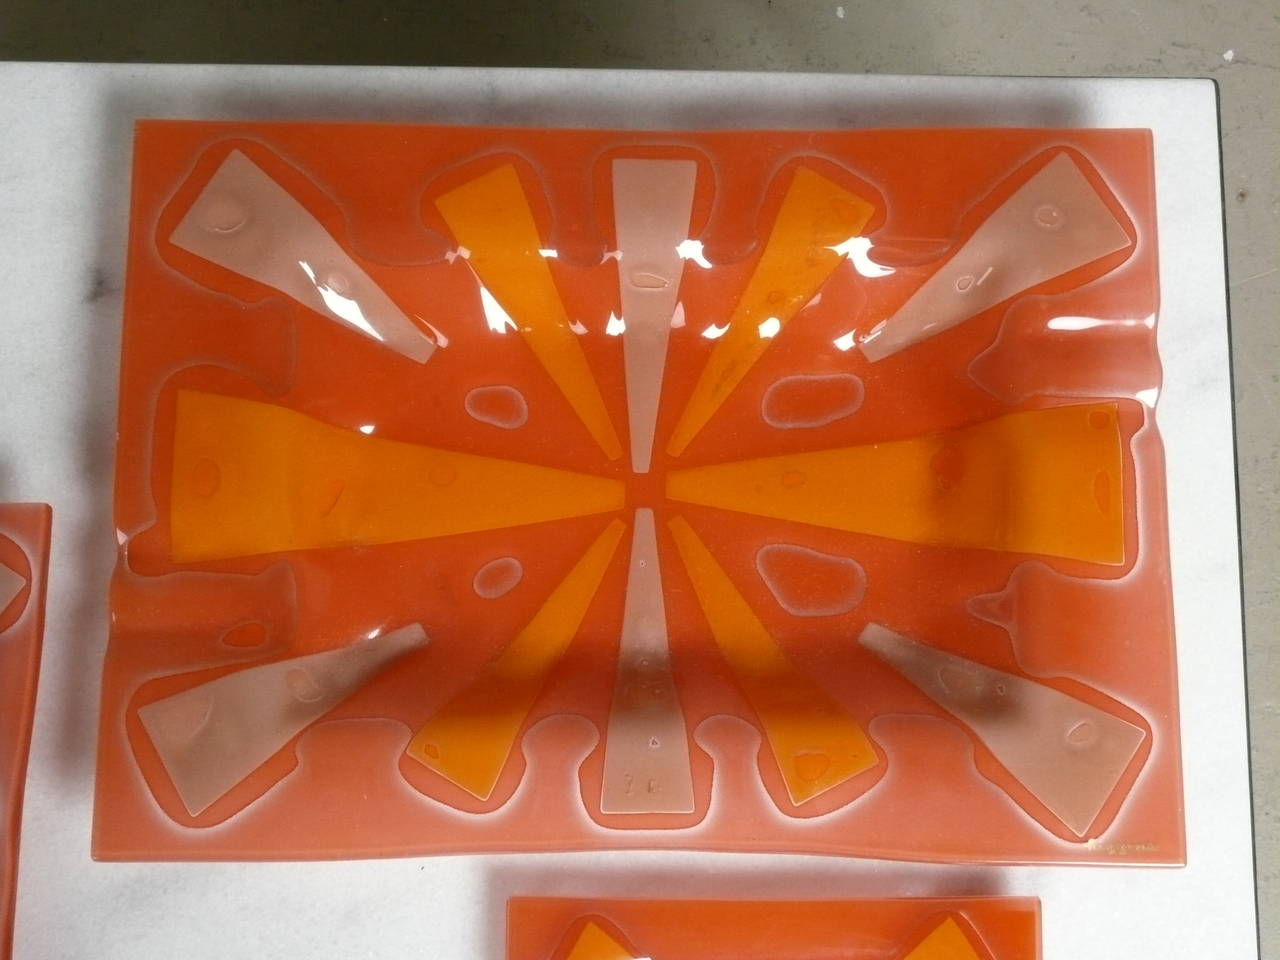 4 1960s Art Glass Ashtrays By Higgins Glass At 1stdibs